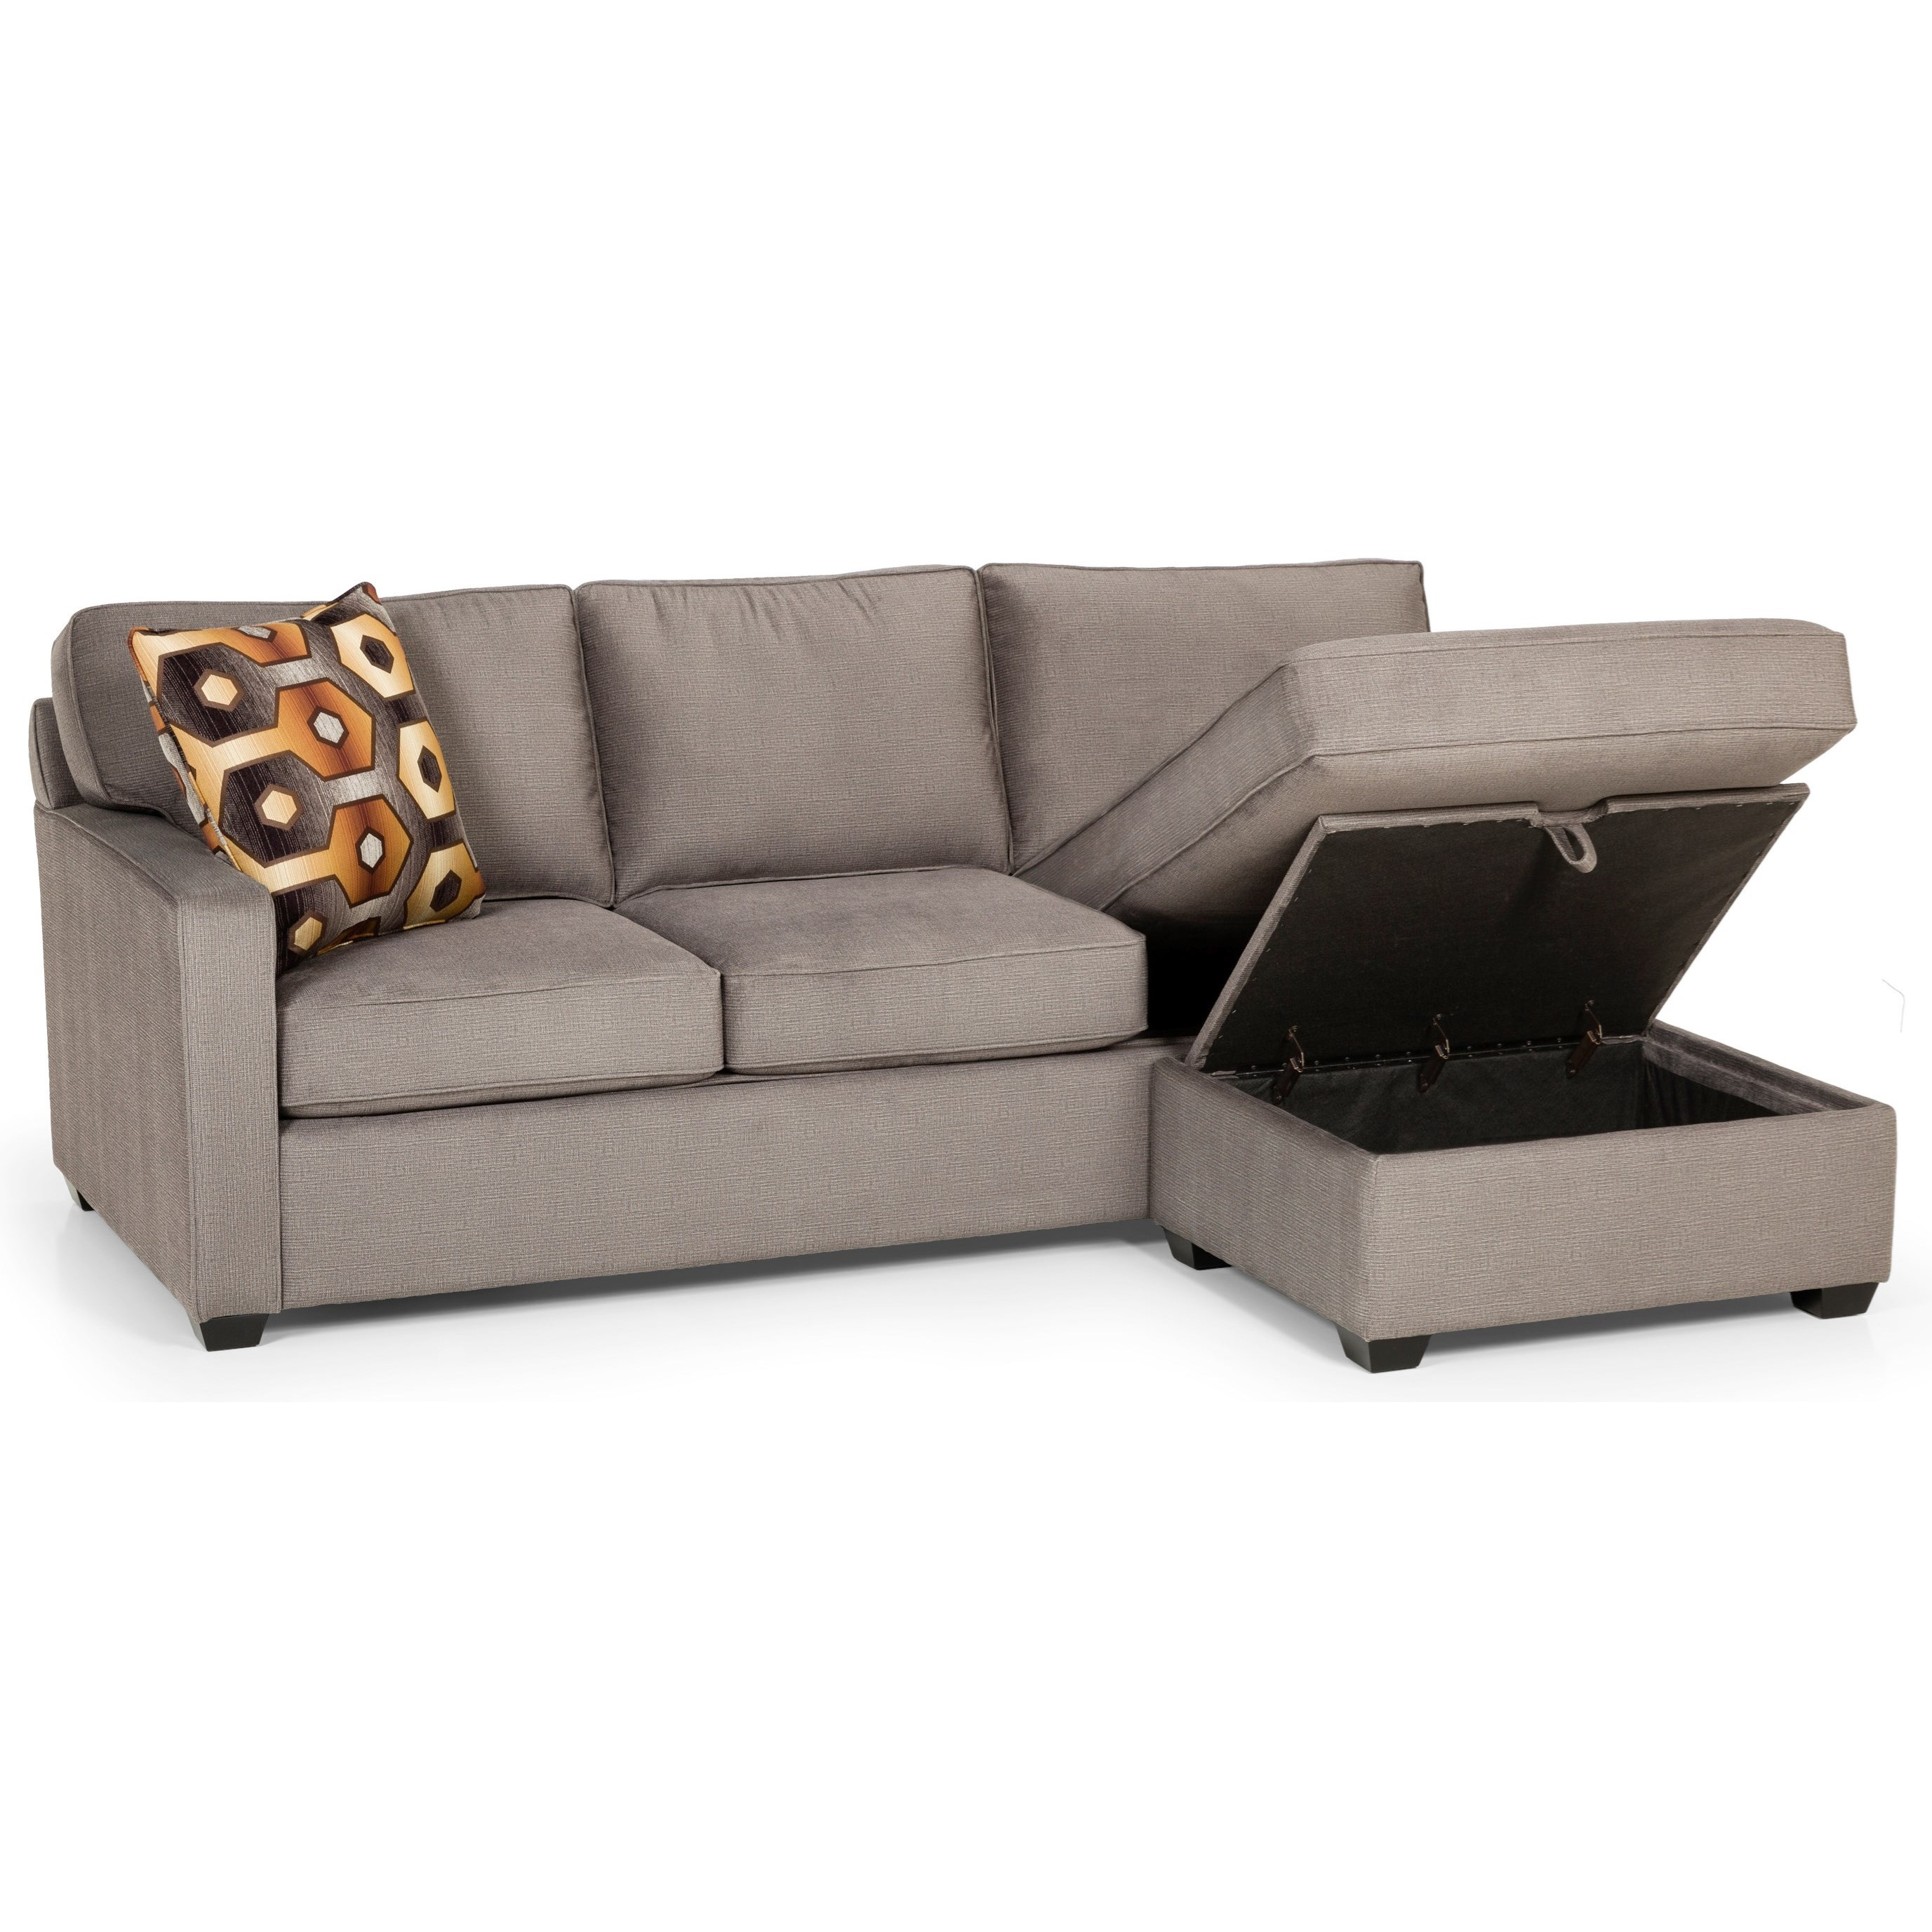 403 Sofa Chaise Queen Gel Sleeper by Stanton at Wilson's Furniture